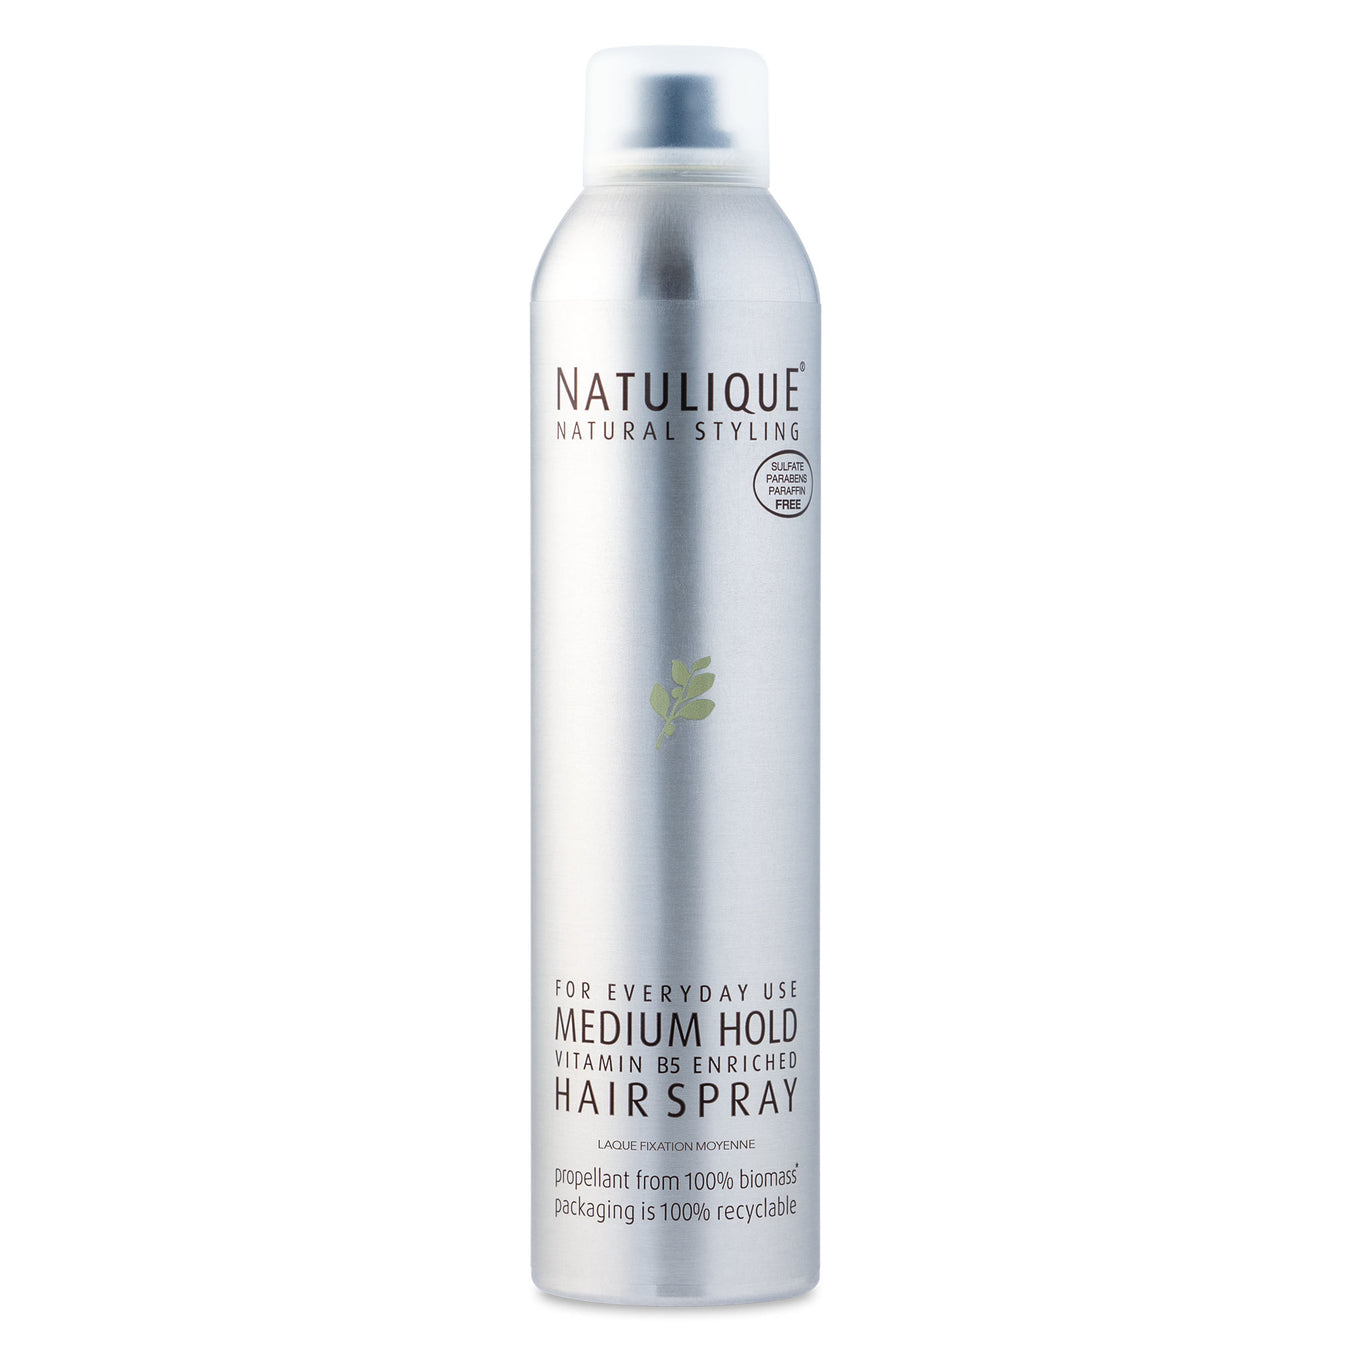 Natulique - Styling Products